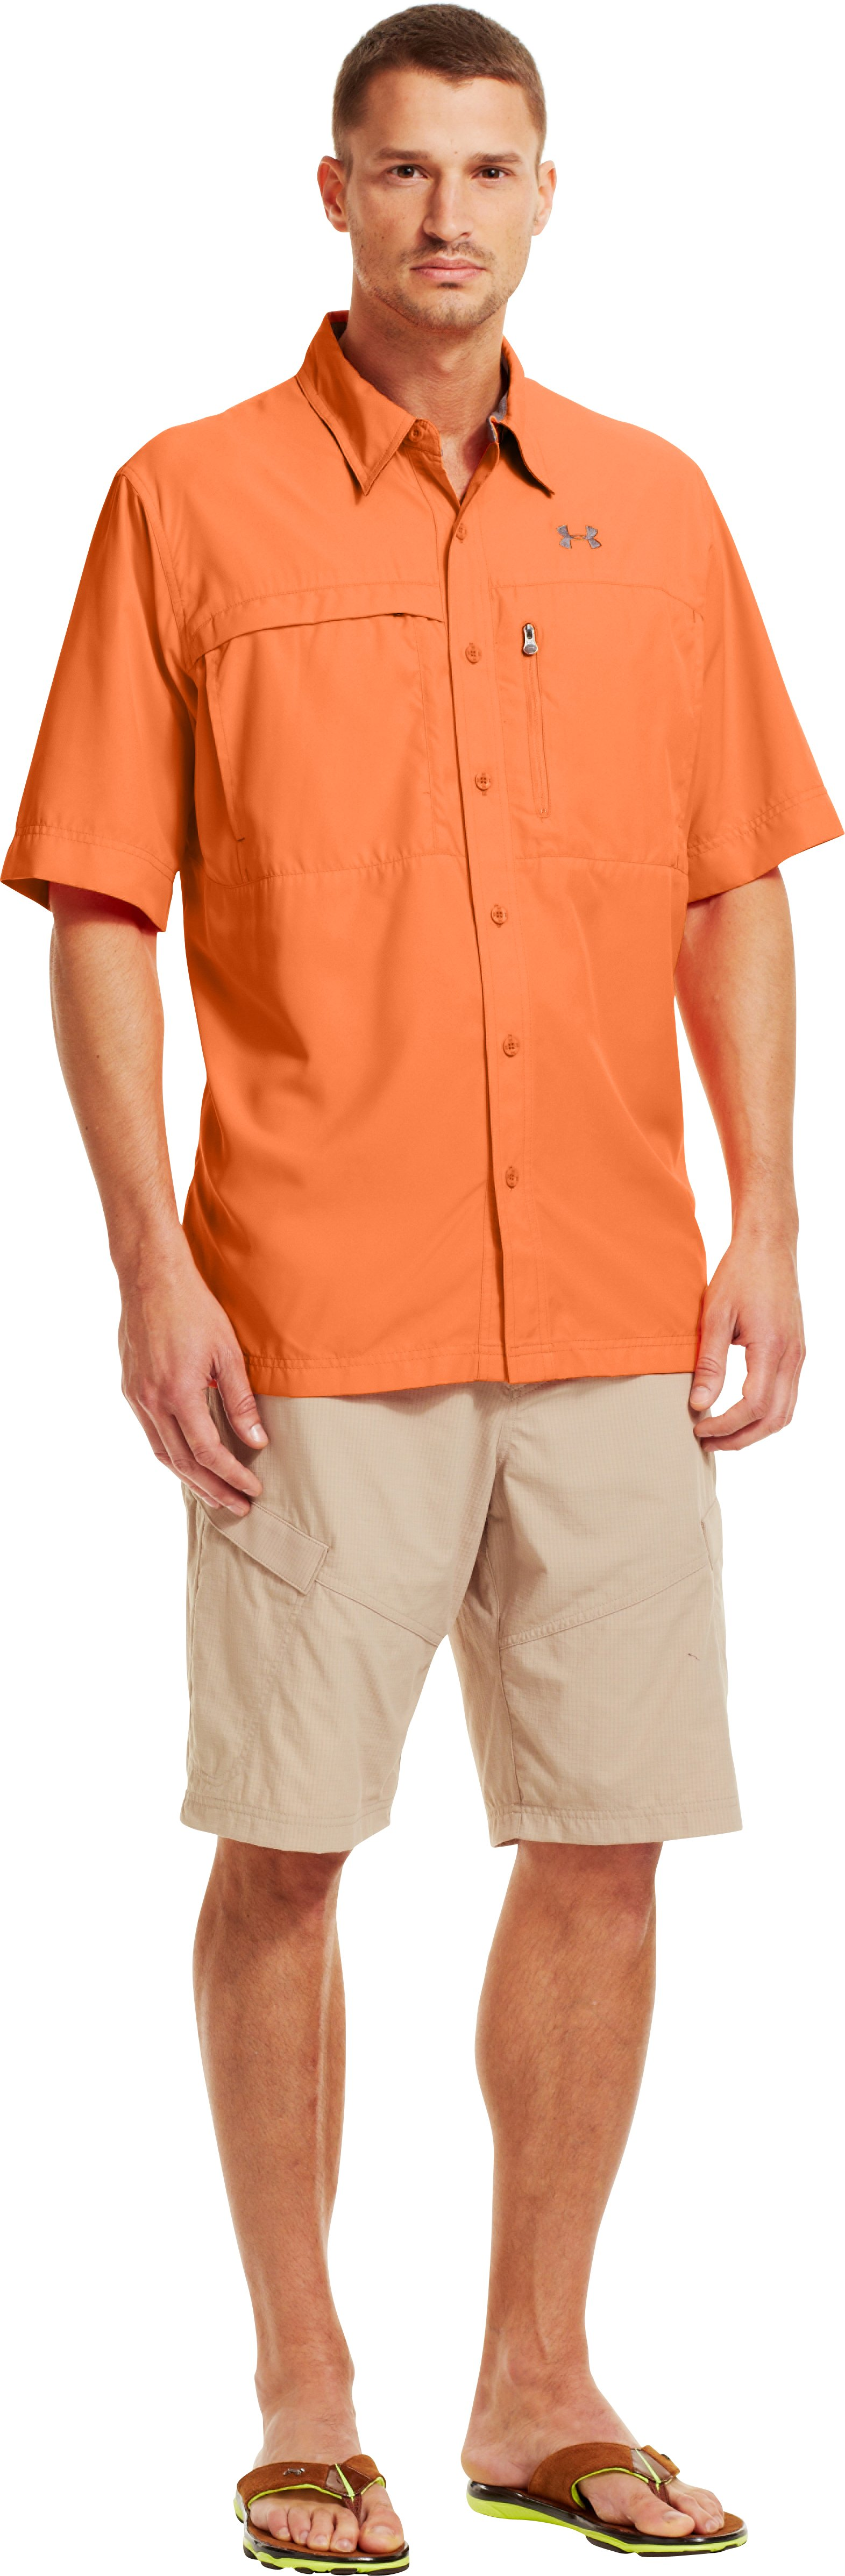 Men's Flats Guide Short Sleeve Shirt, Mandarin